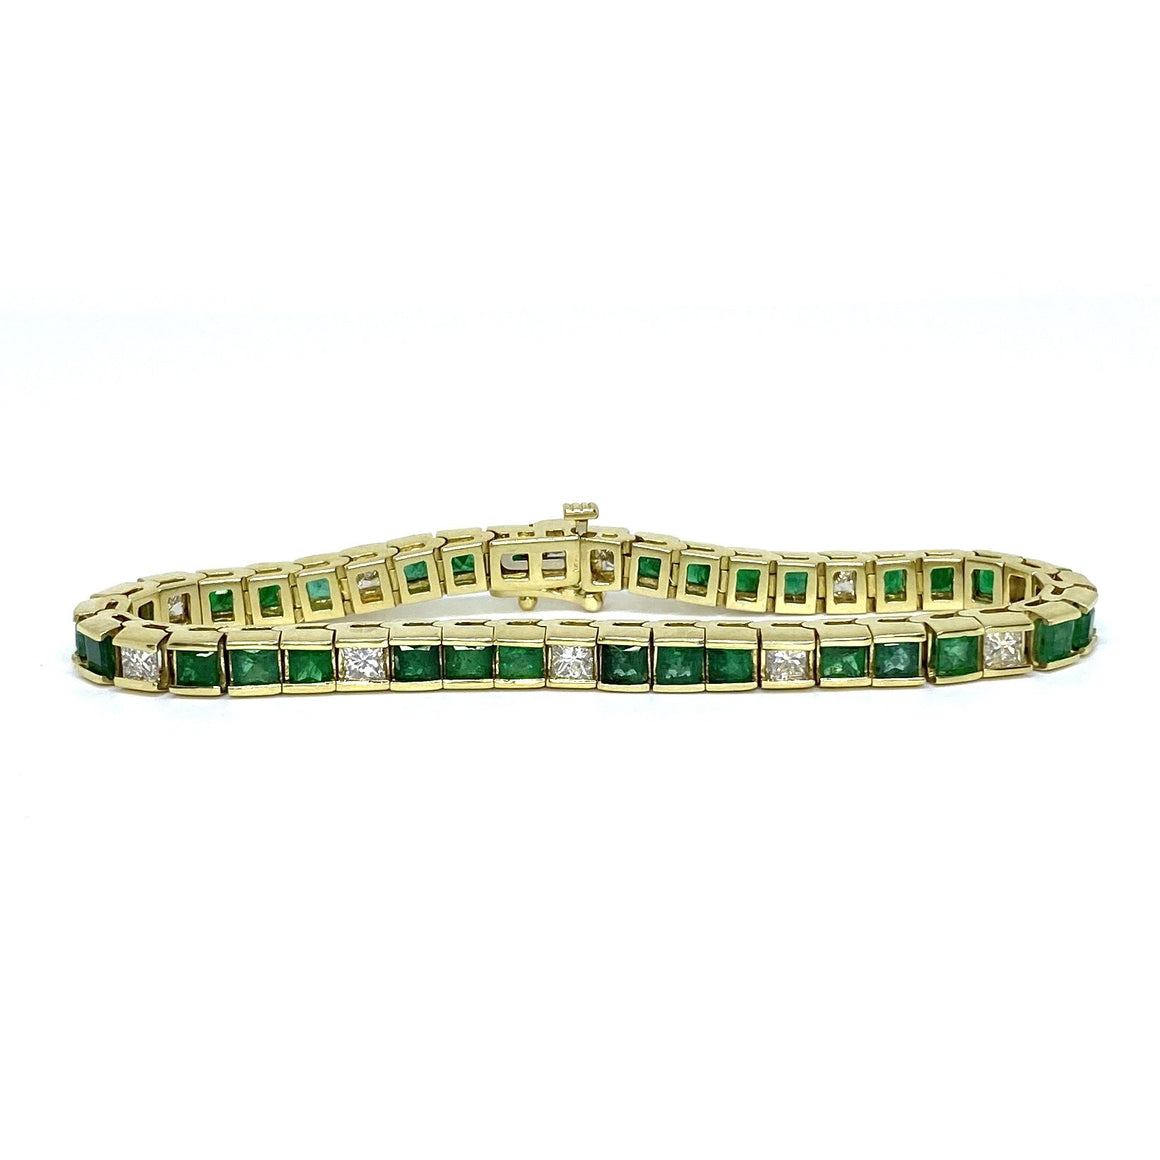 Vintage 14K Yellow Gold Emerald and Diamond Tennis Bracelet